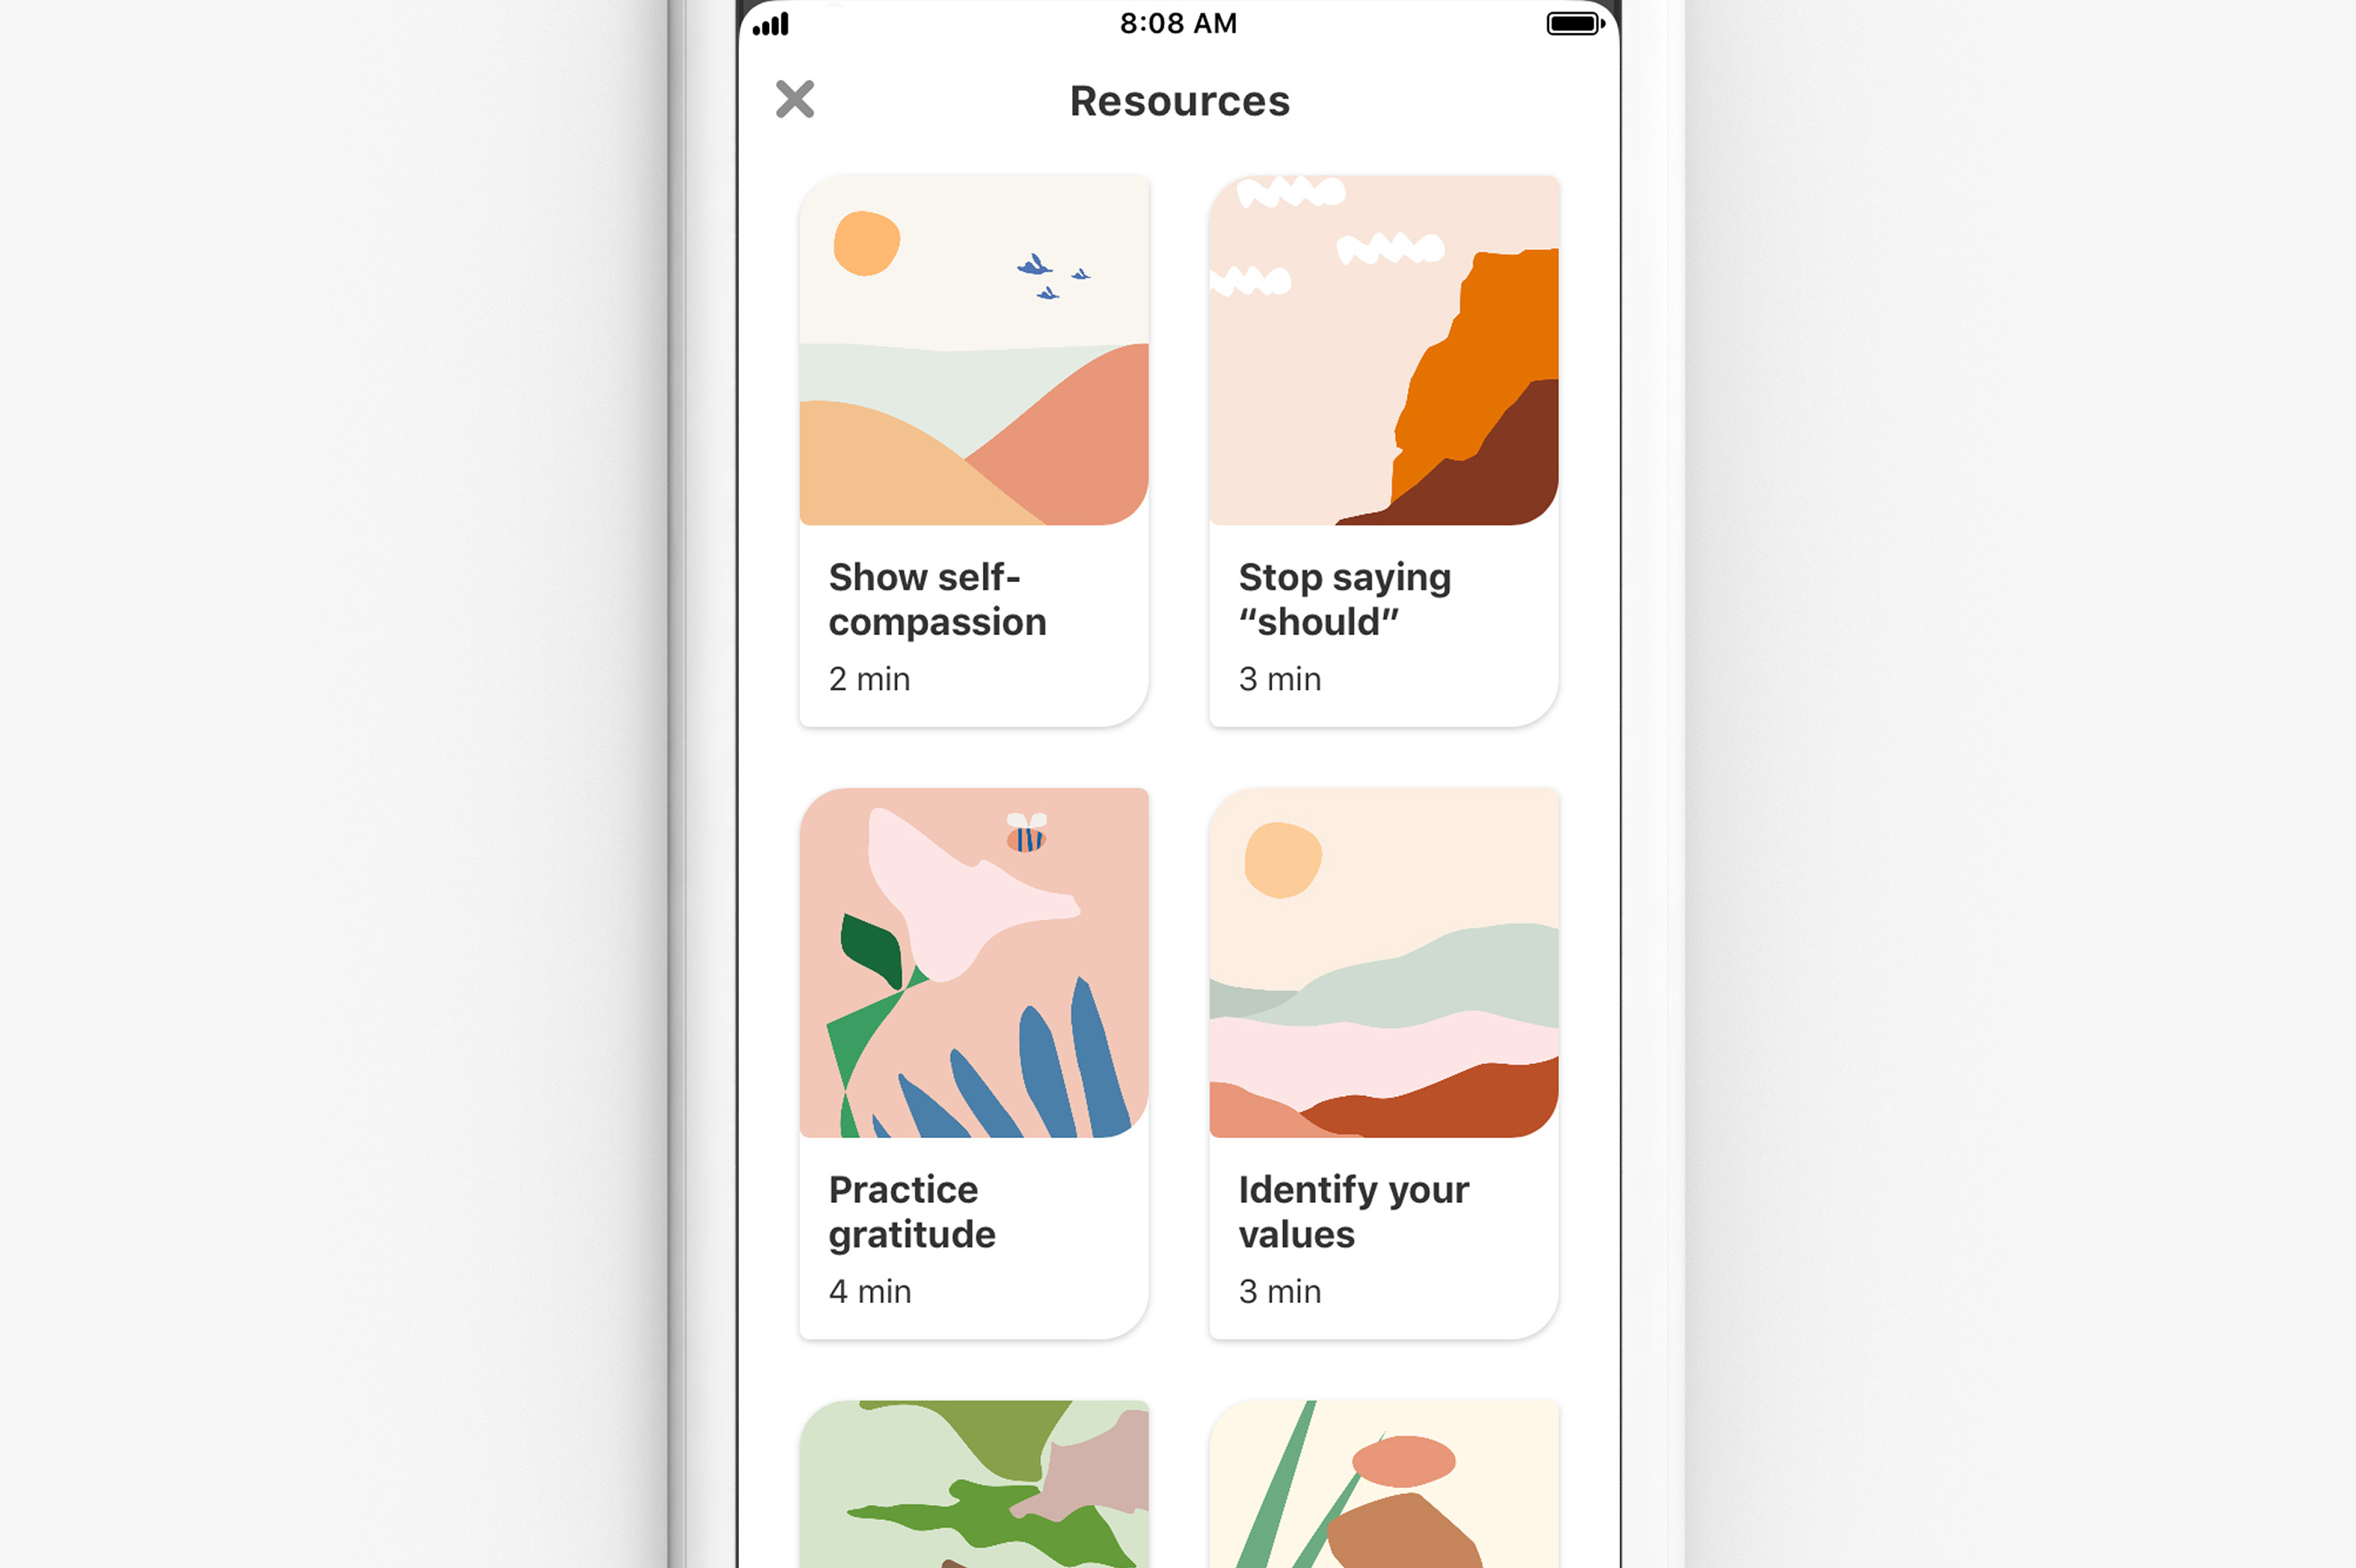 Pinterest launches wellness activities to help users cope with stress, anxiety